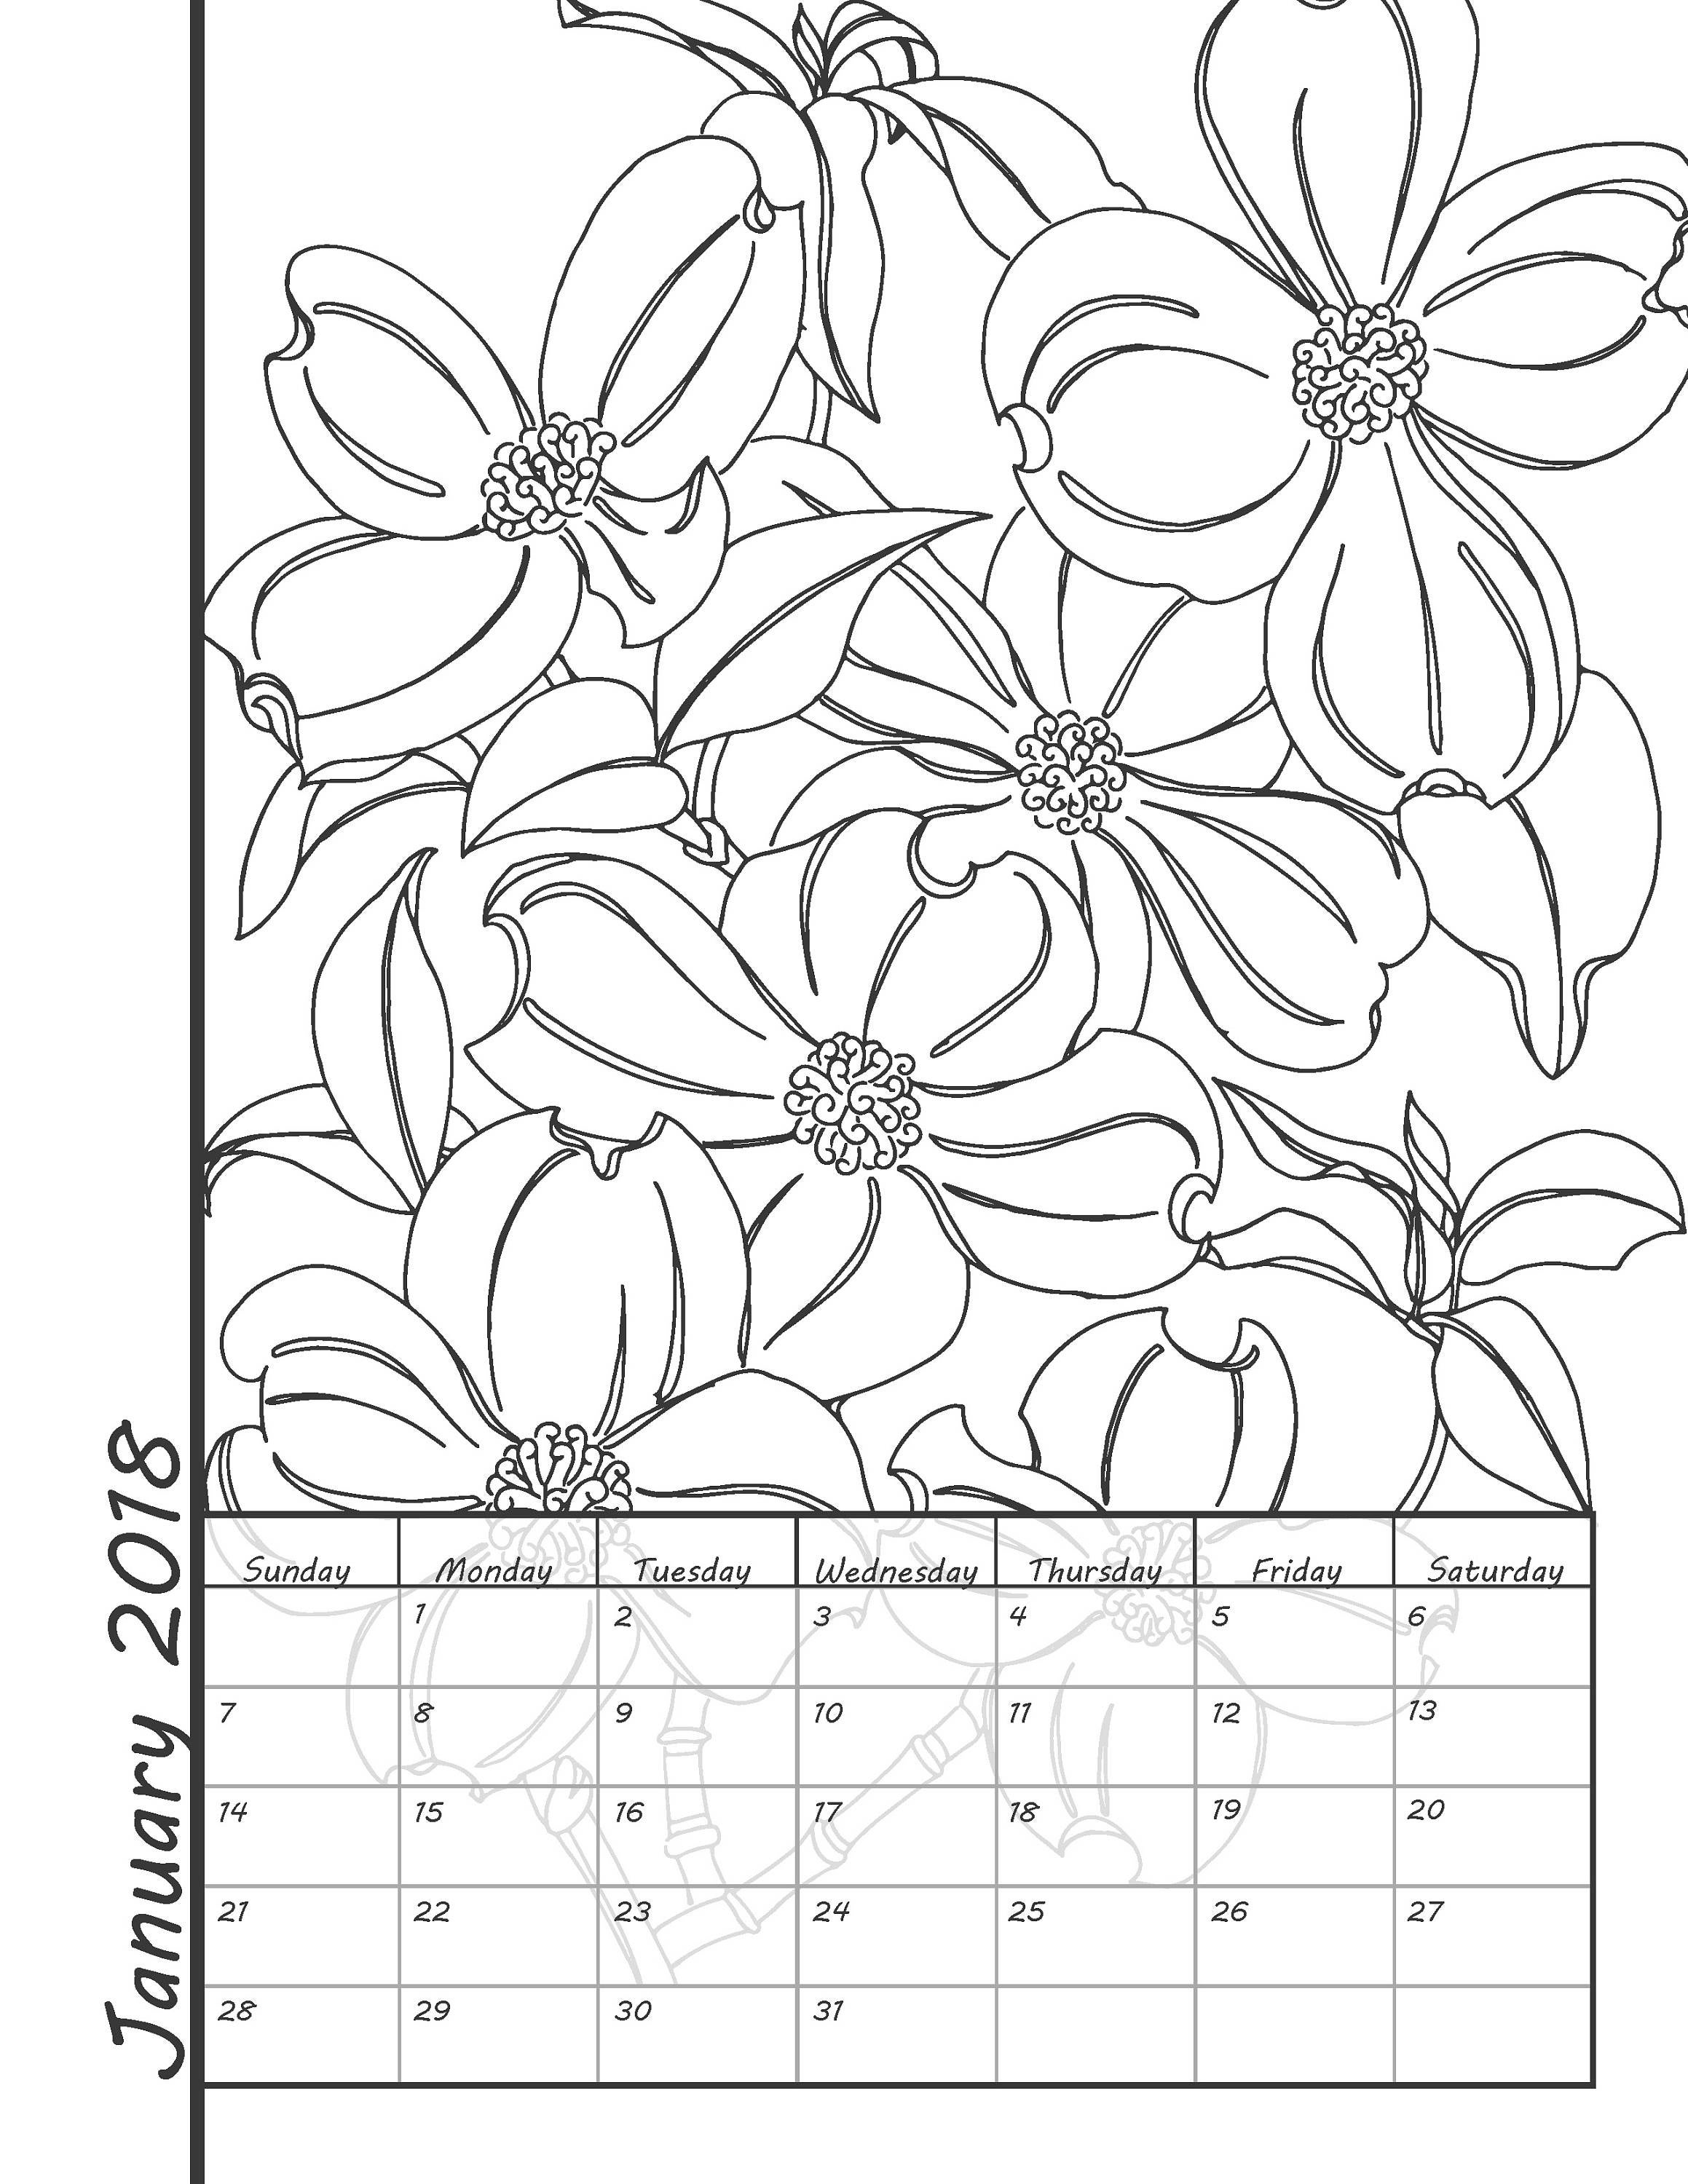 Printable Coloring Calendar 2018 Calendar Instant Download Coloring Pages 2018